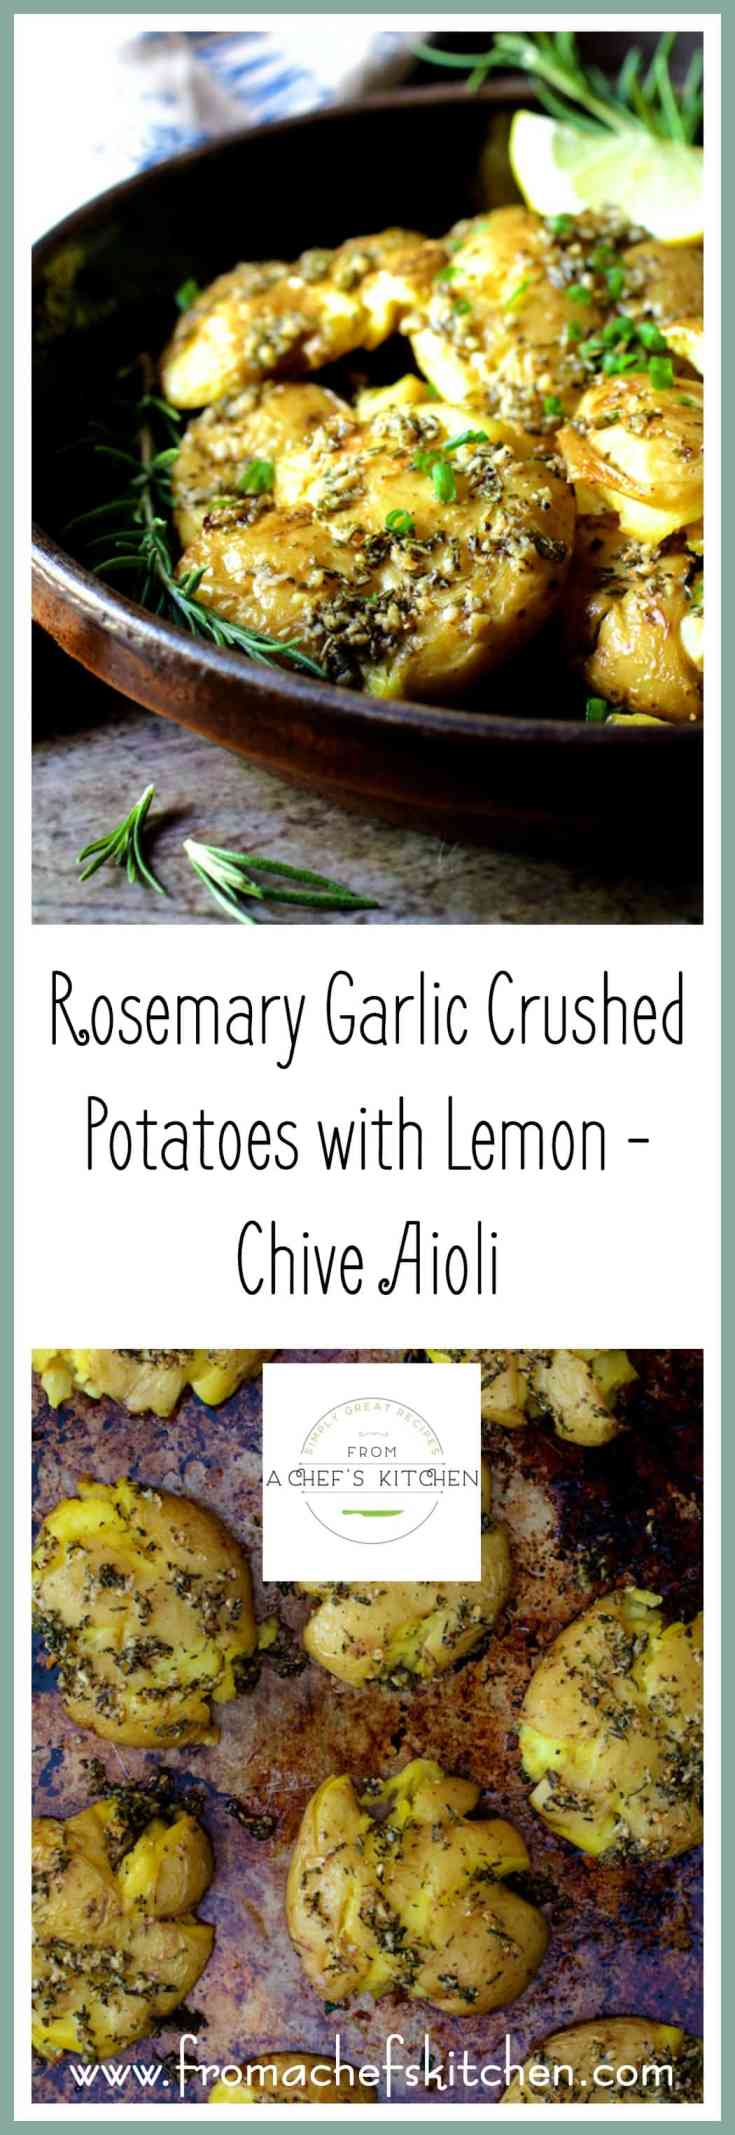 Rosemary Garlic Crushed Potatoes with Lemon Chive Aioli